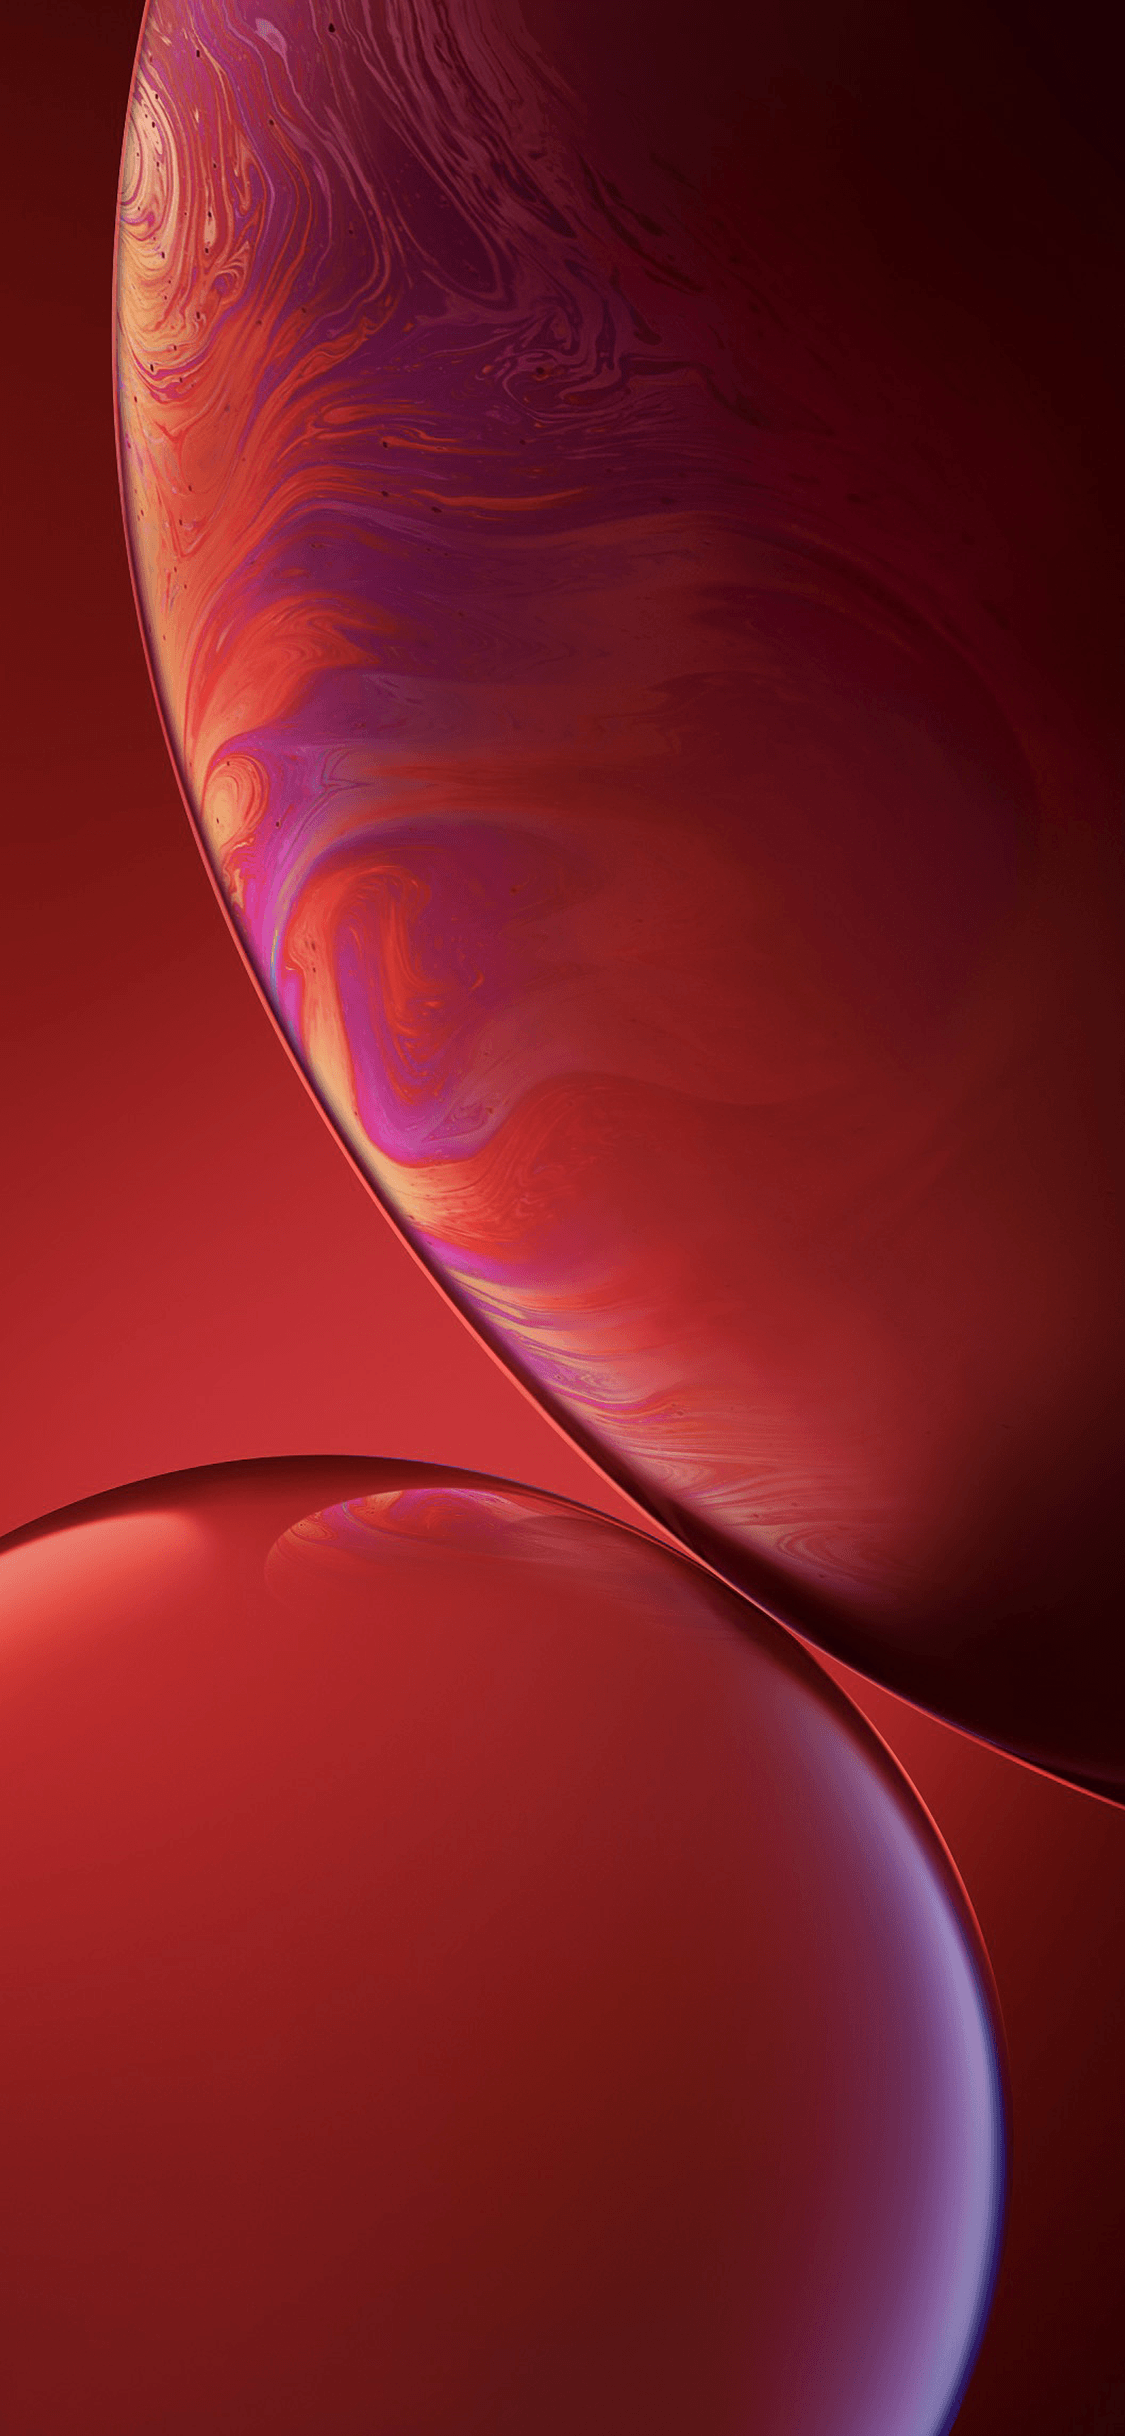 iPhone XR Wallpapers - Top Free iPhone